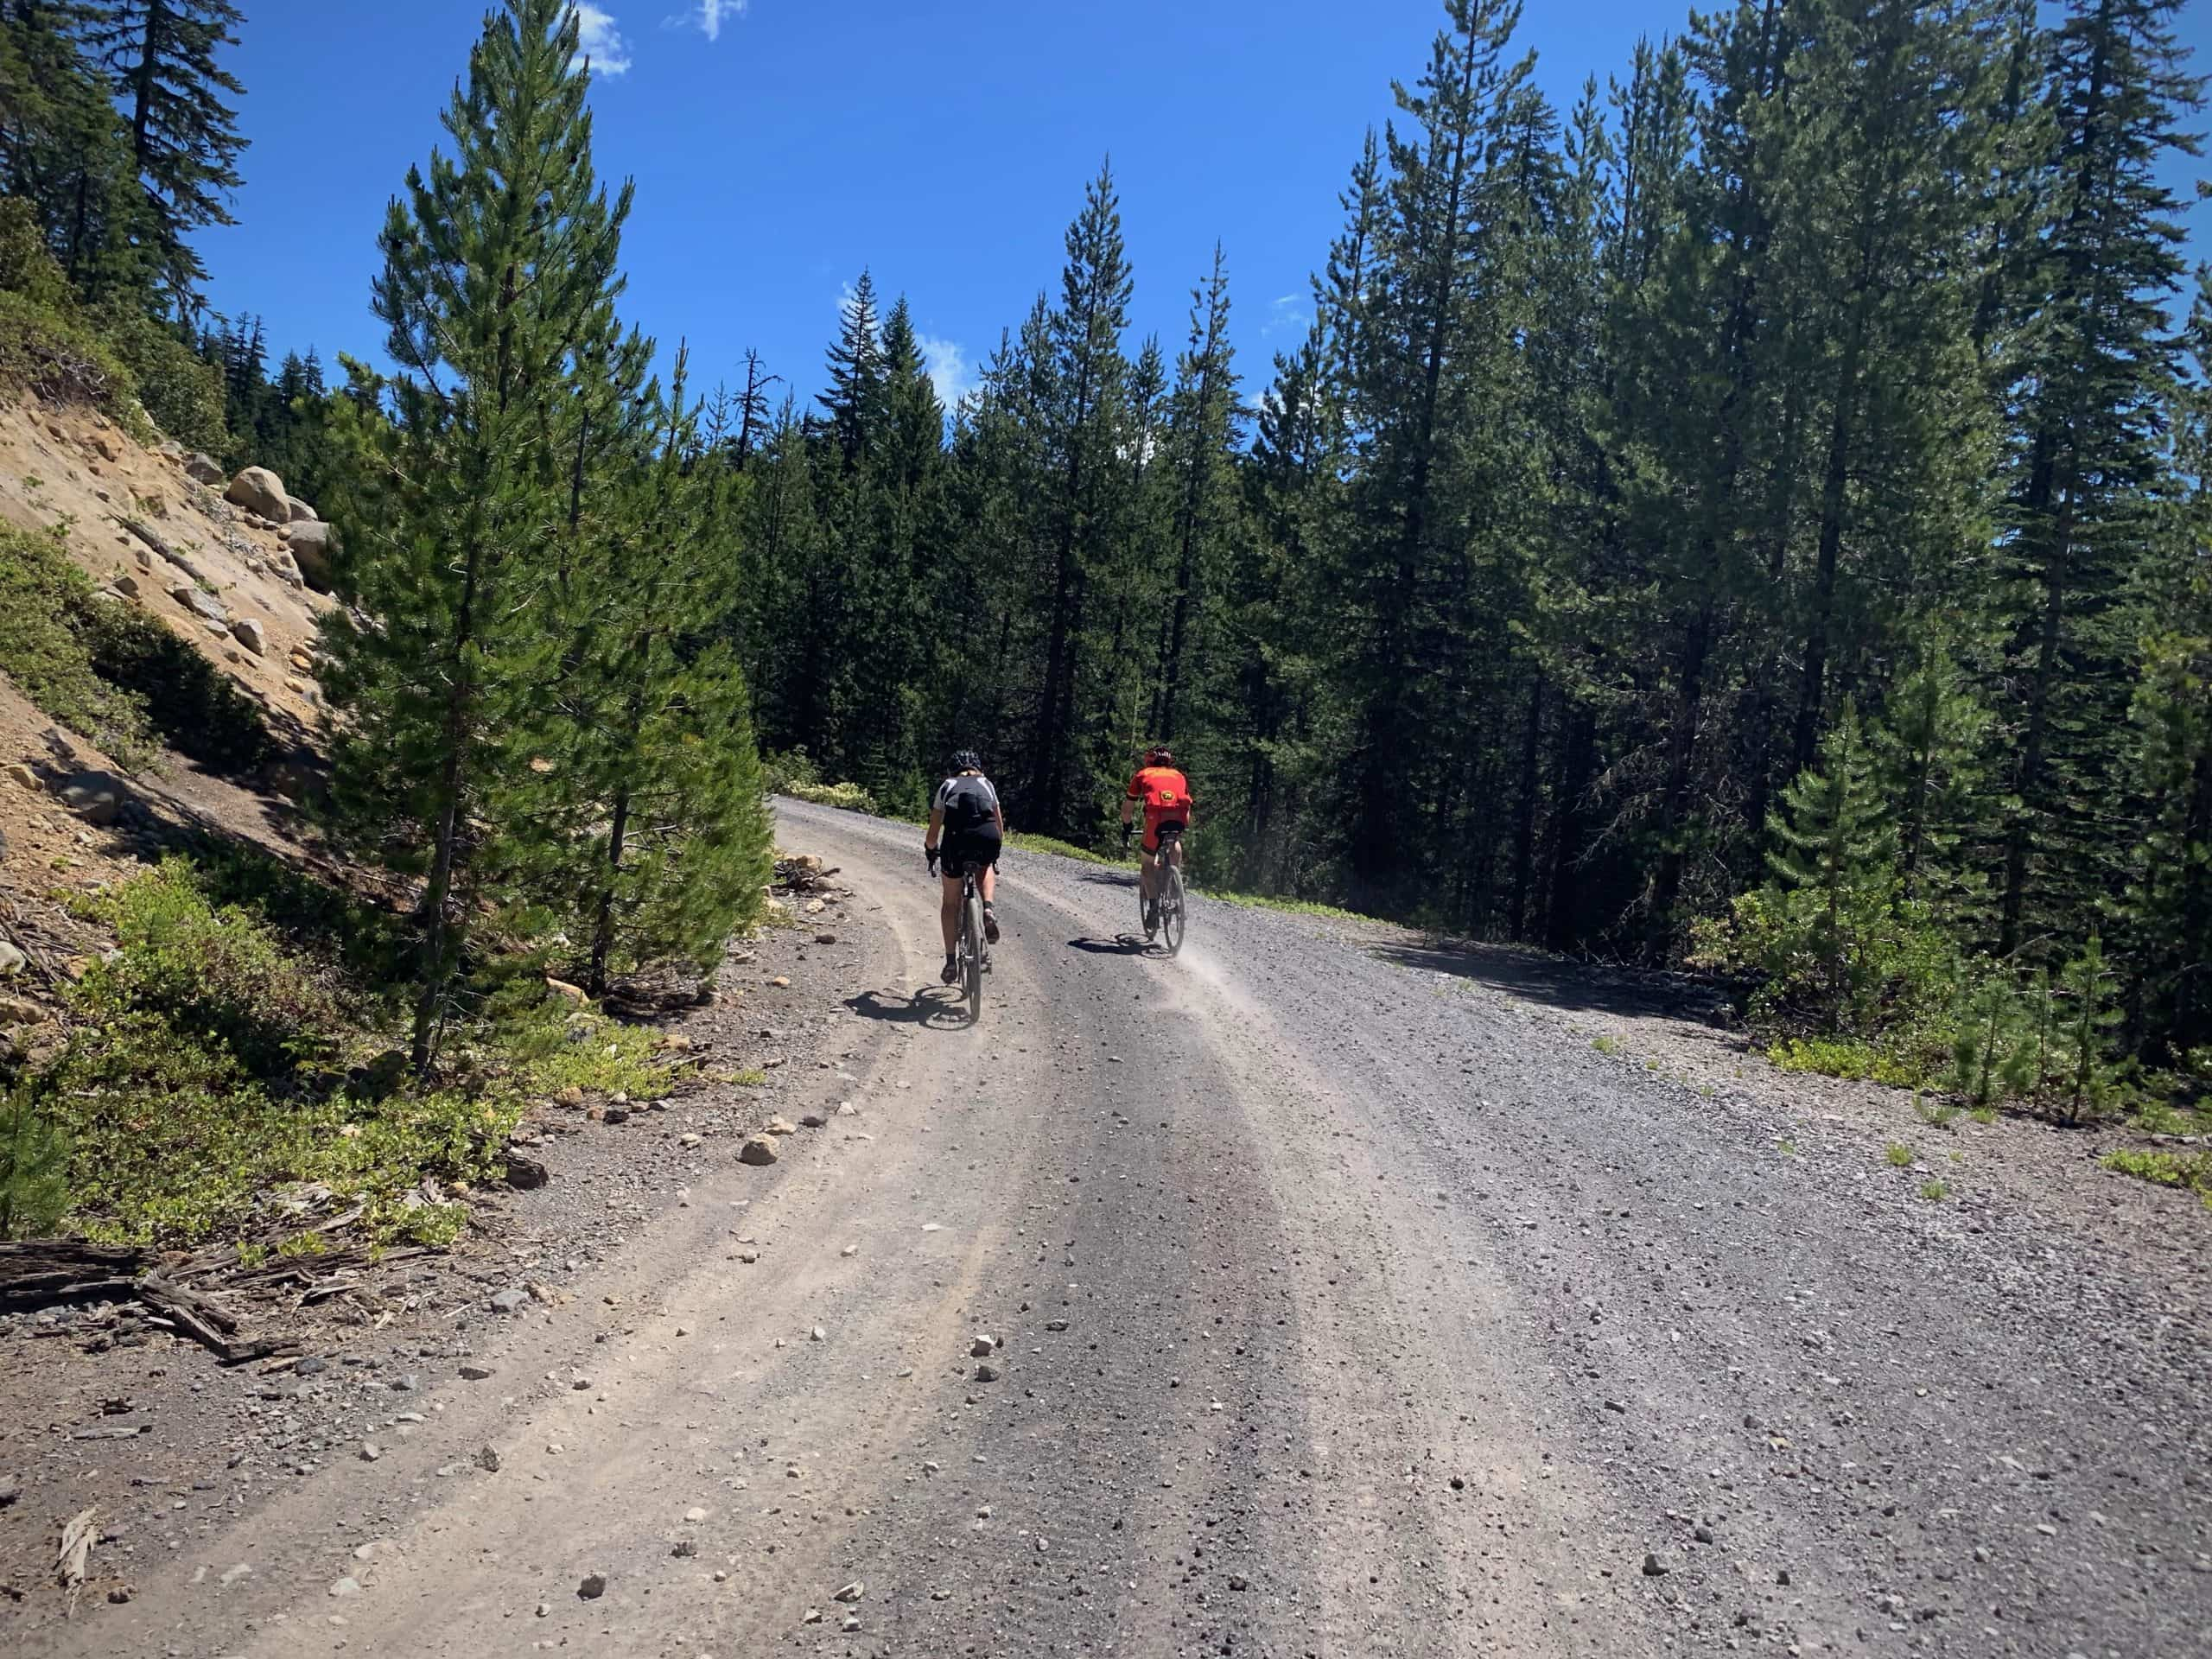 Two gravel bike riders in the Siuslaw National Forest near the Oregon coast.